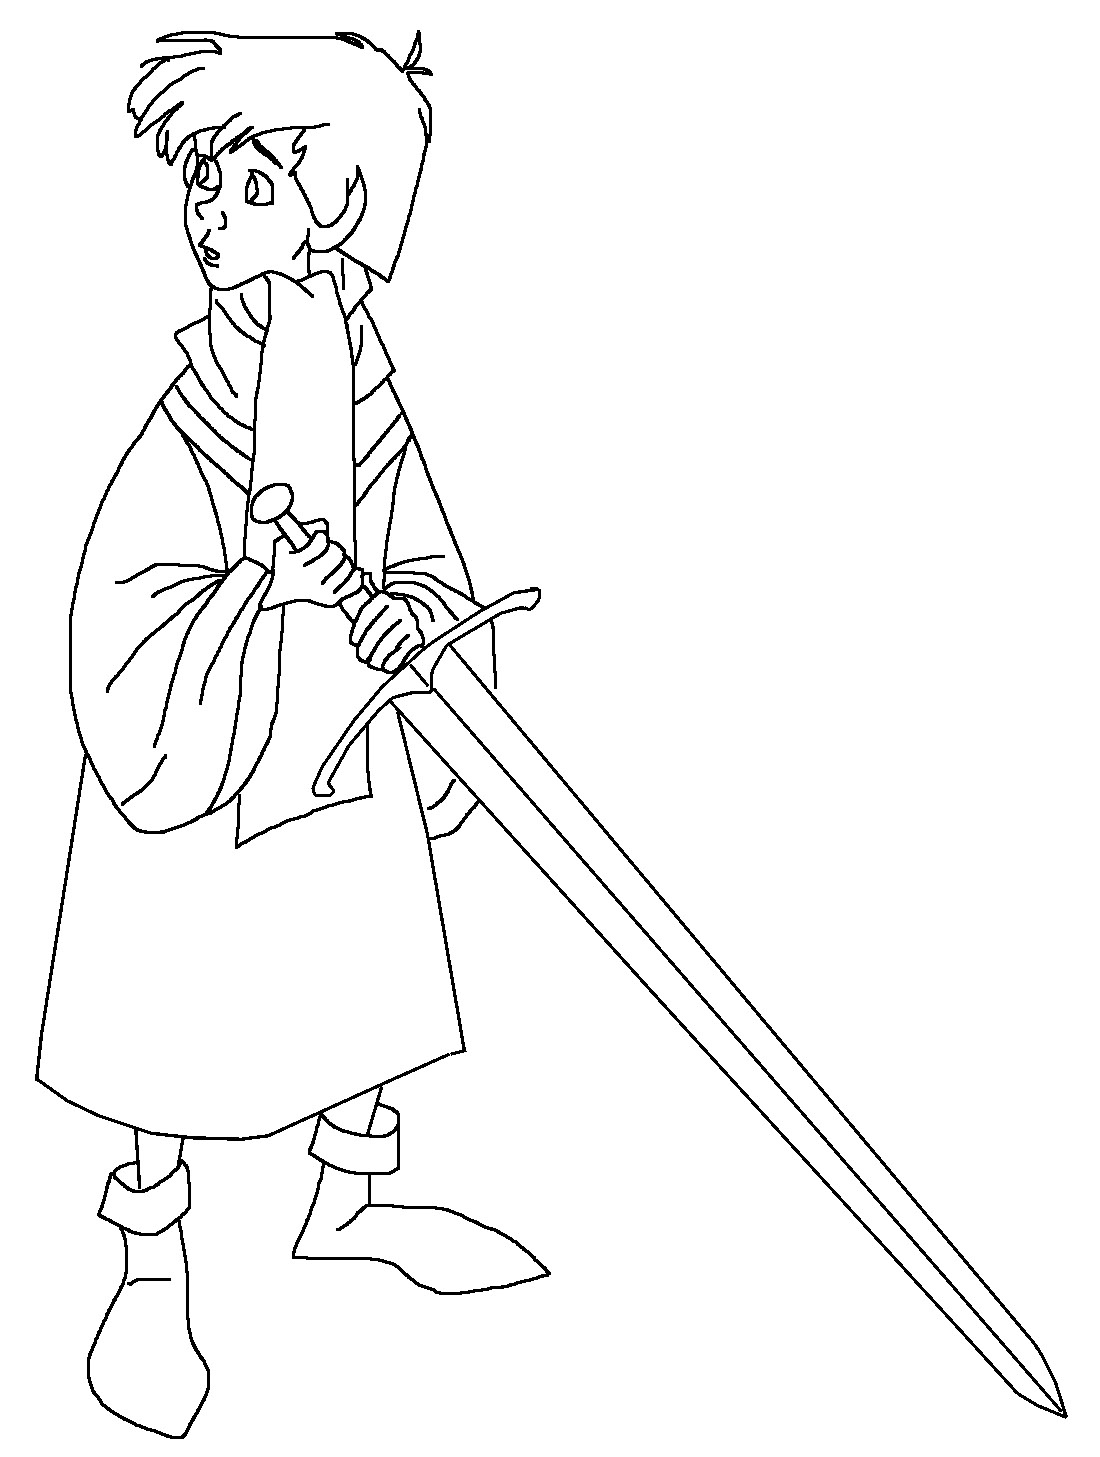 coloring pages stones - photo#25